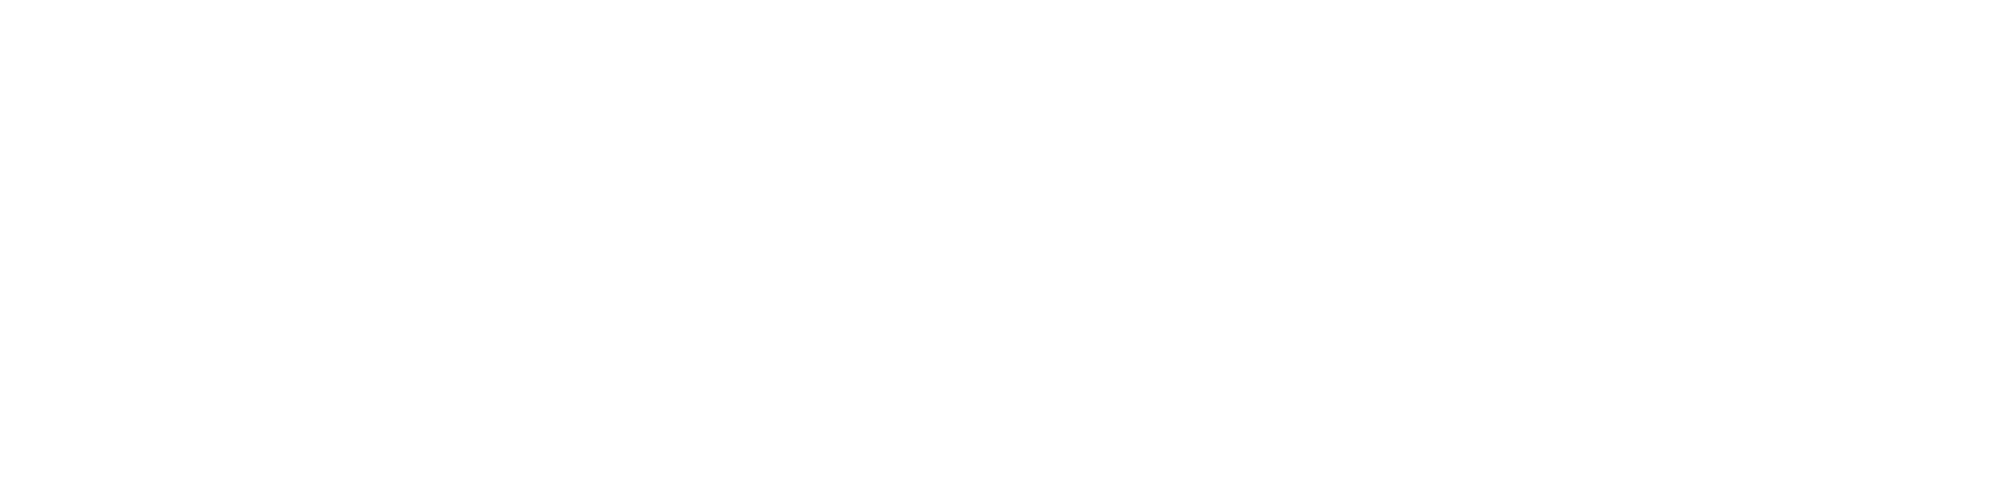 Winding River Consulting Logo in White.